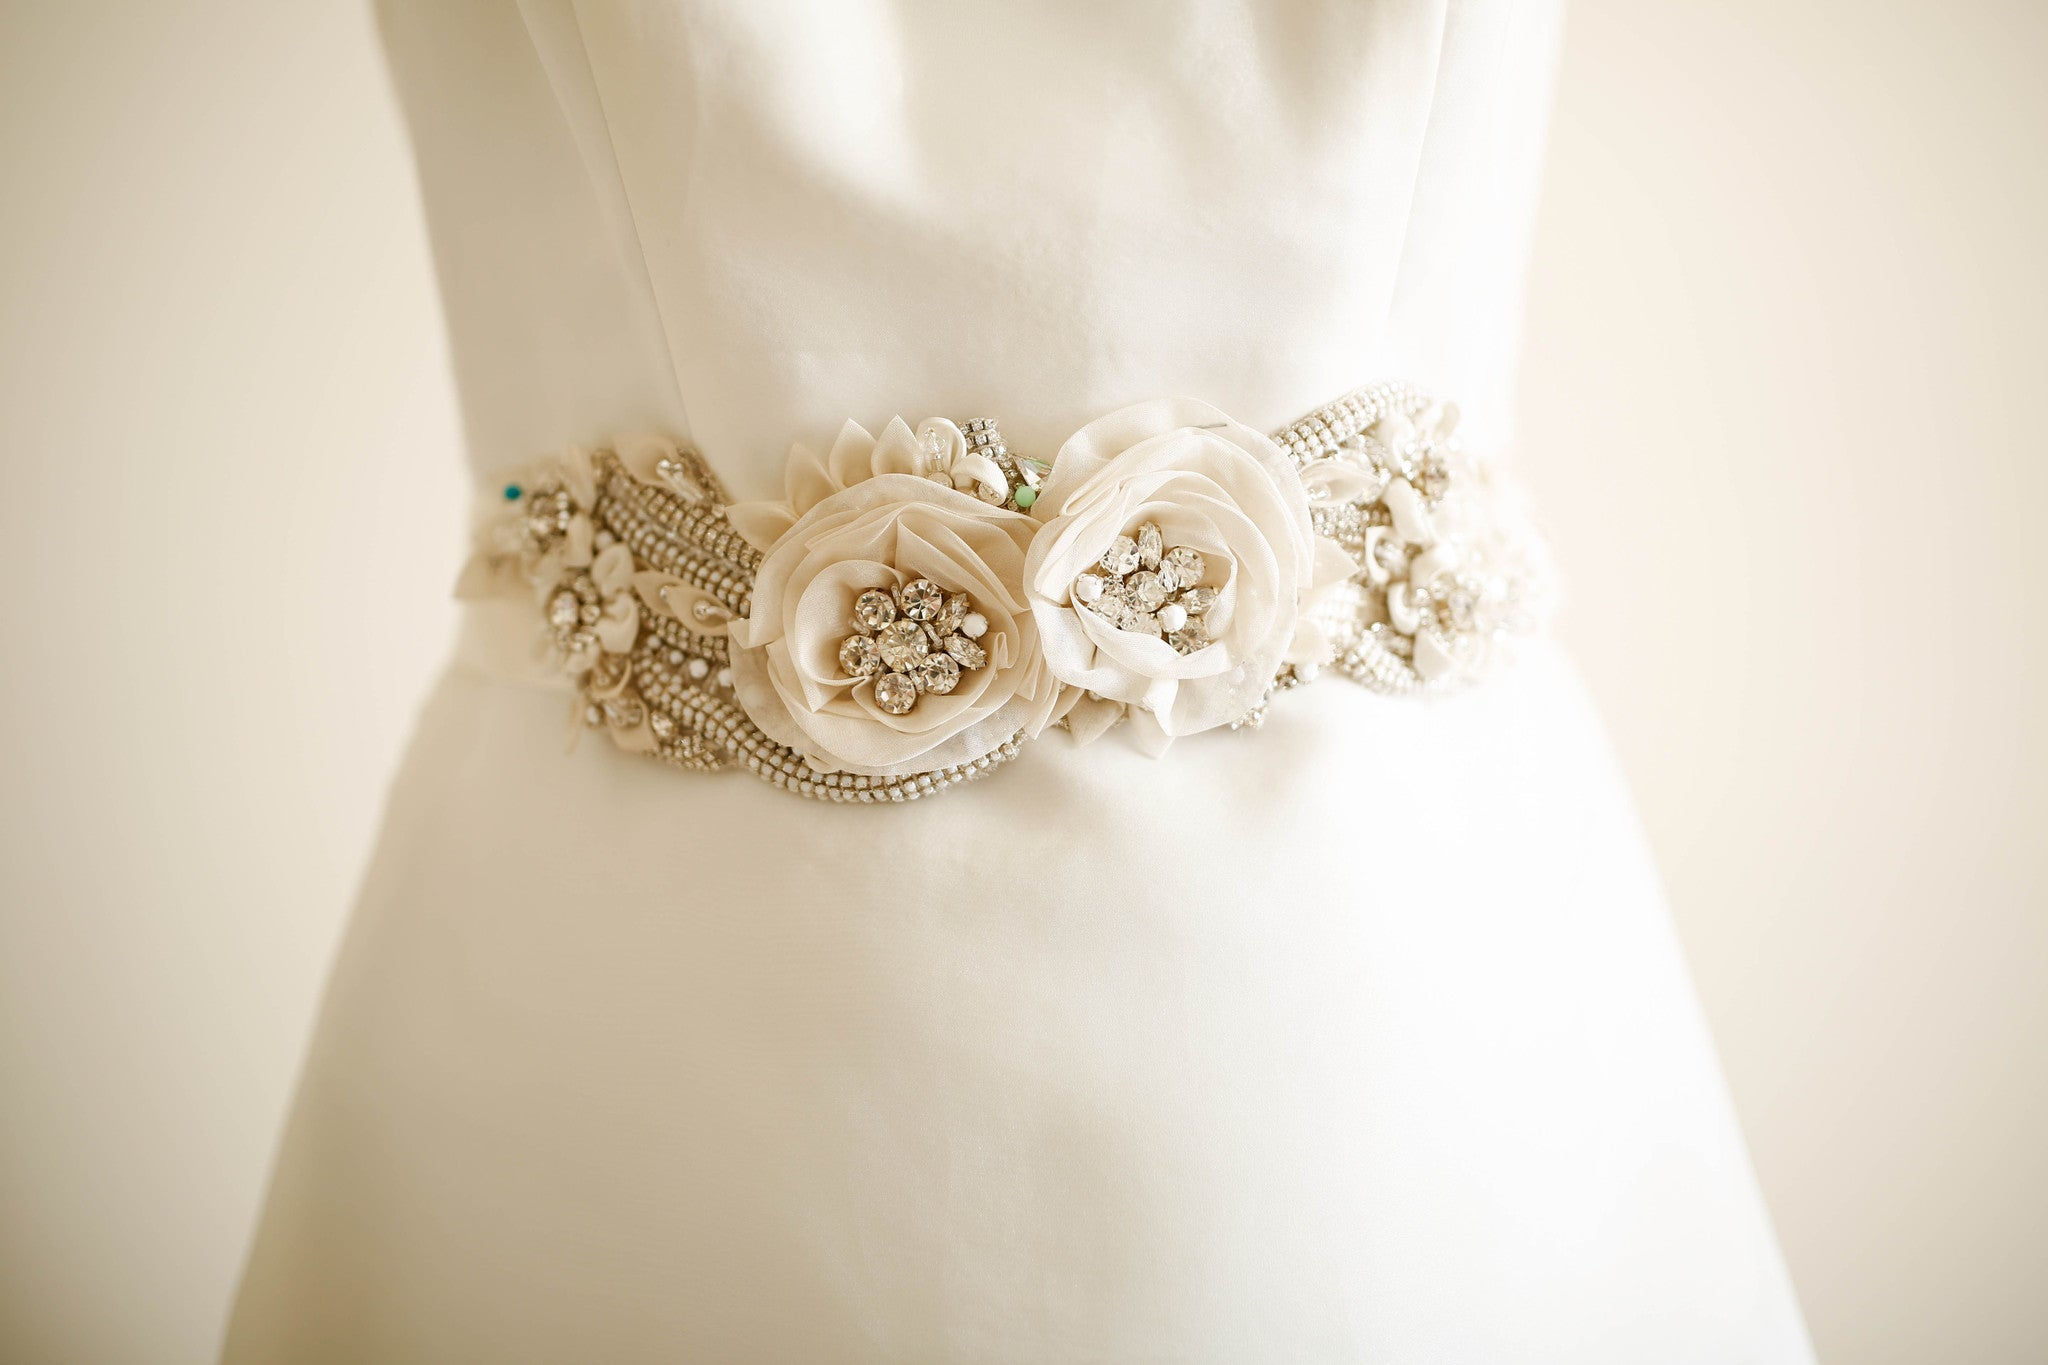 Wholesale bridal belts and sashes s29 millieicaro boutique for Belts for wedding dress